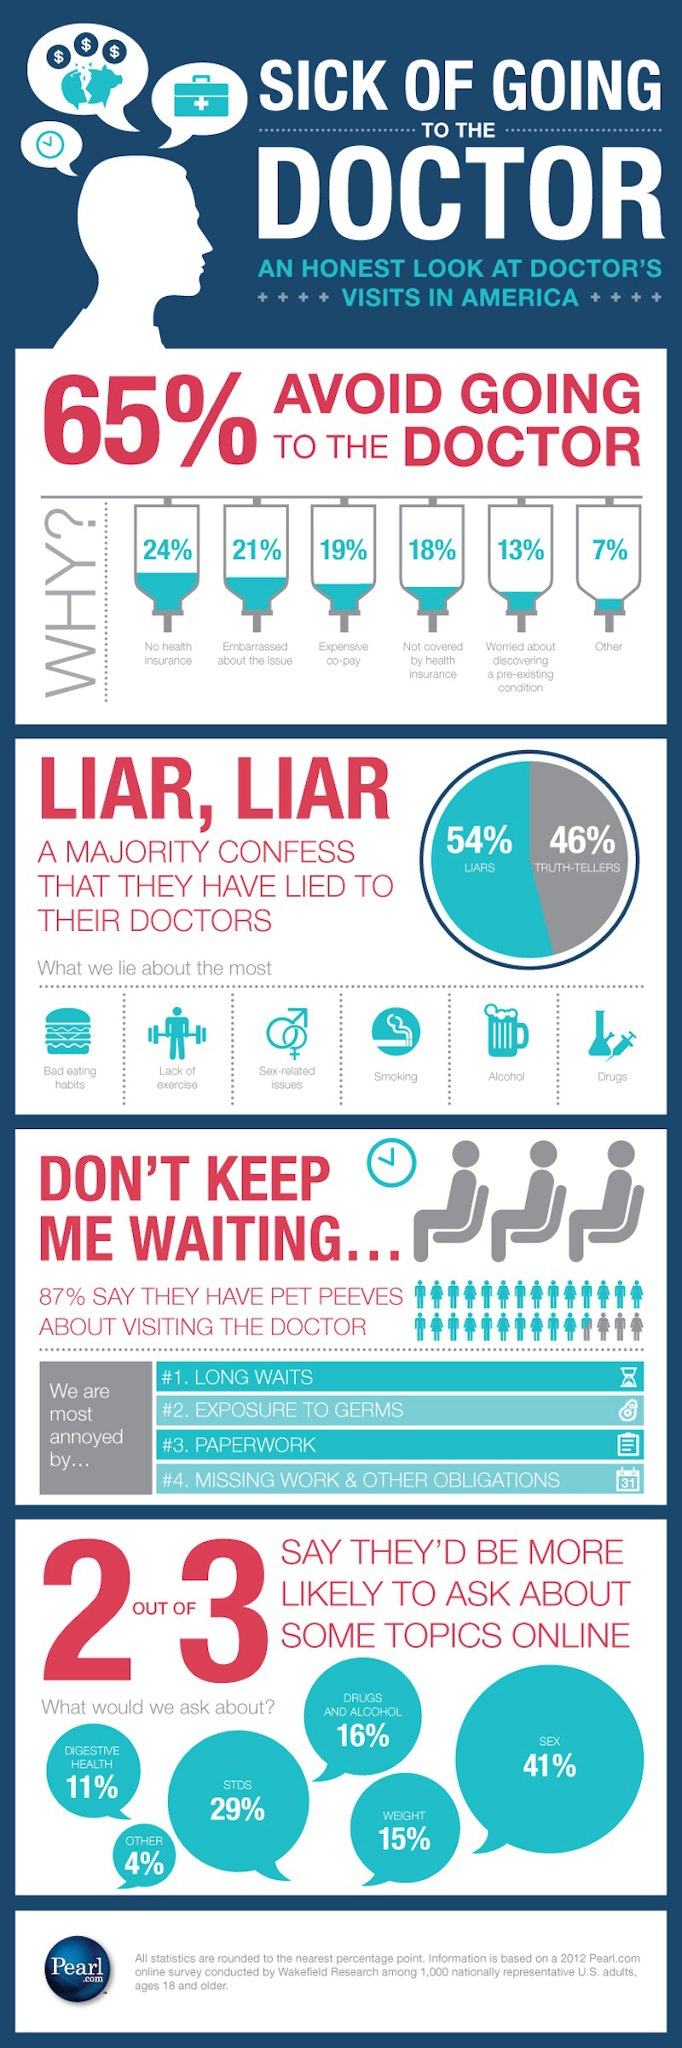 Infographic regarding why patients don't like going to the doctor's office.